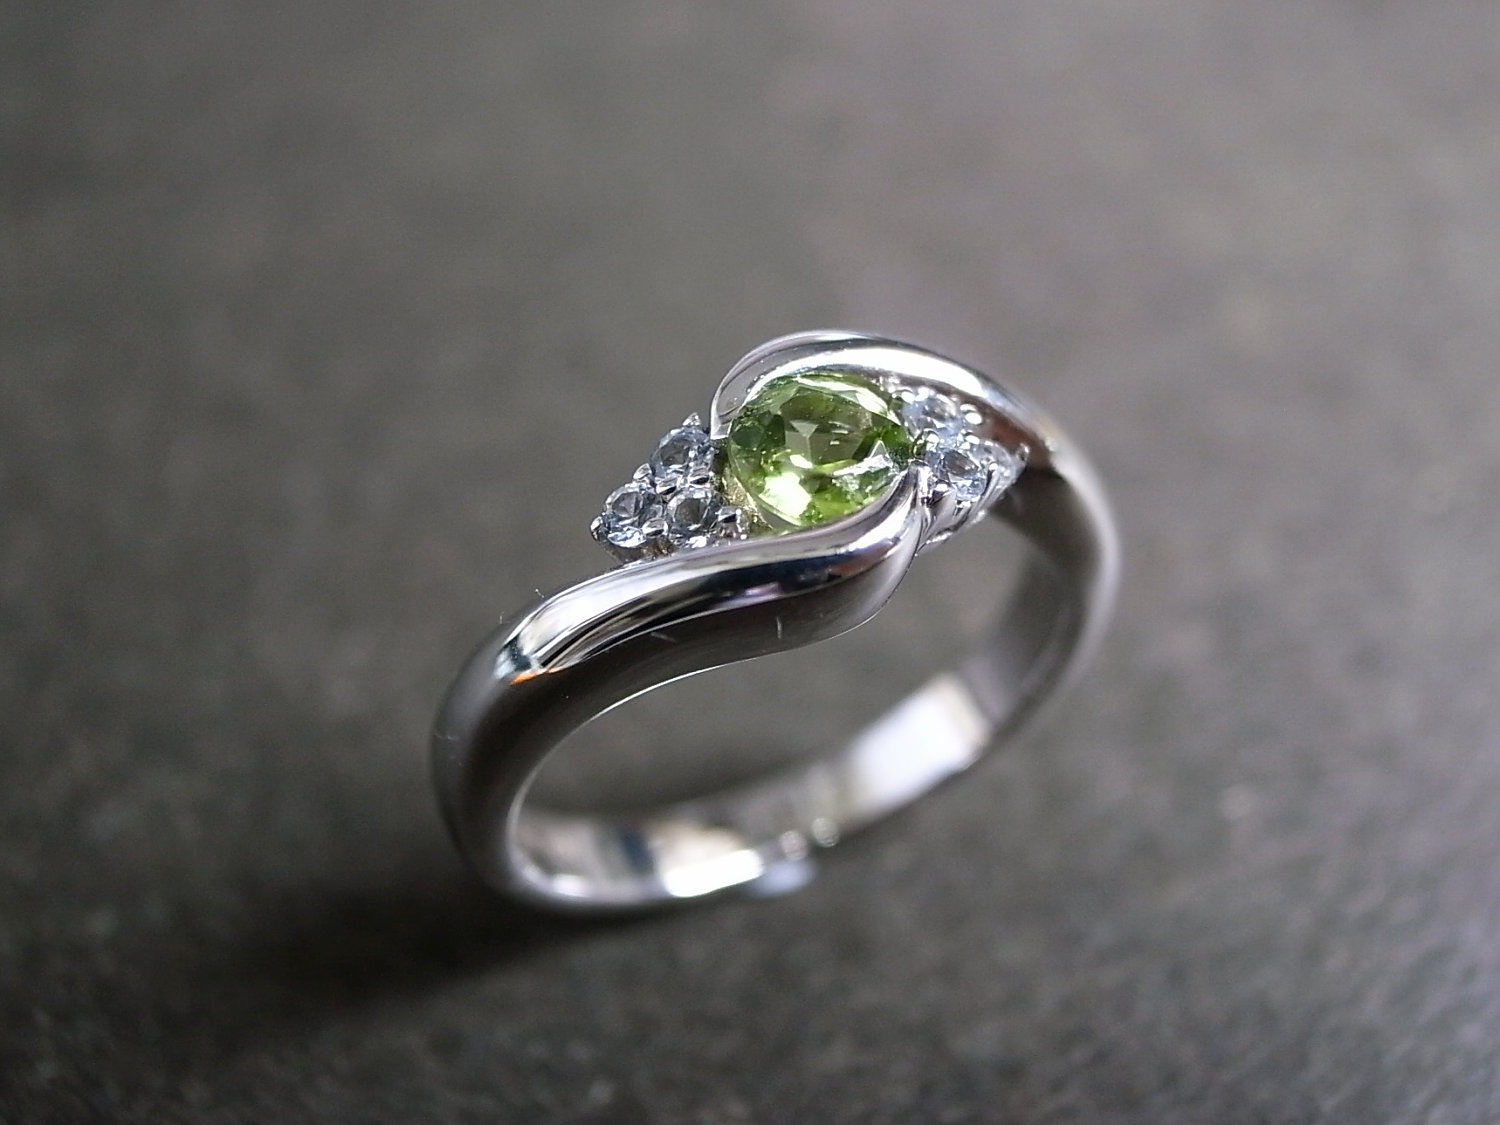 ring diamond rare engagement earth jewelry setting stones accented moissanite stone side rings products with wedding accents green pastel three